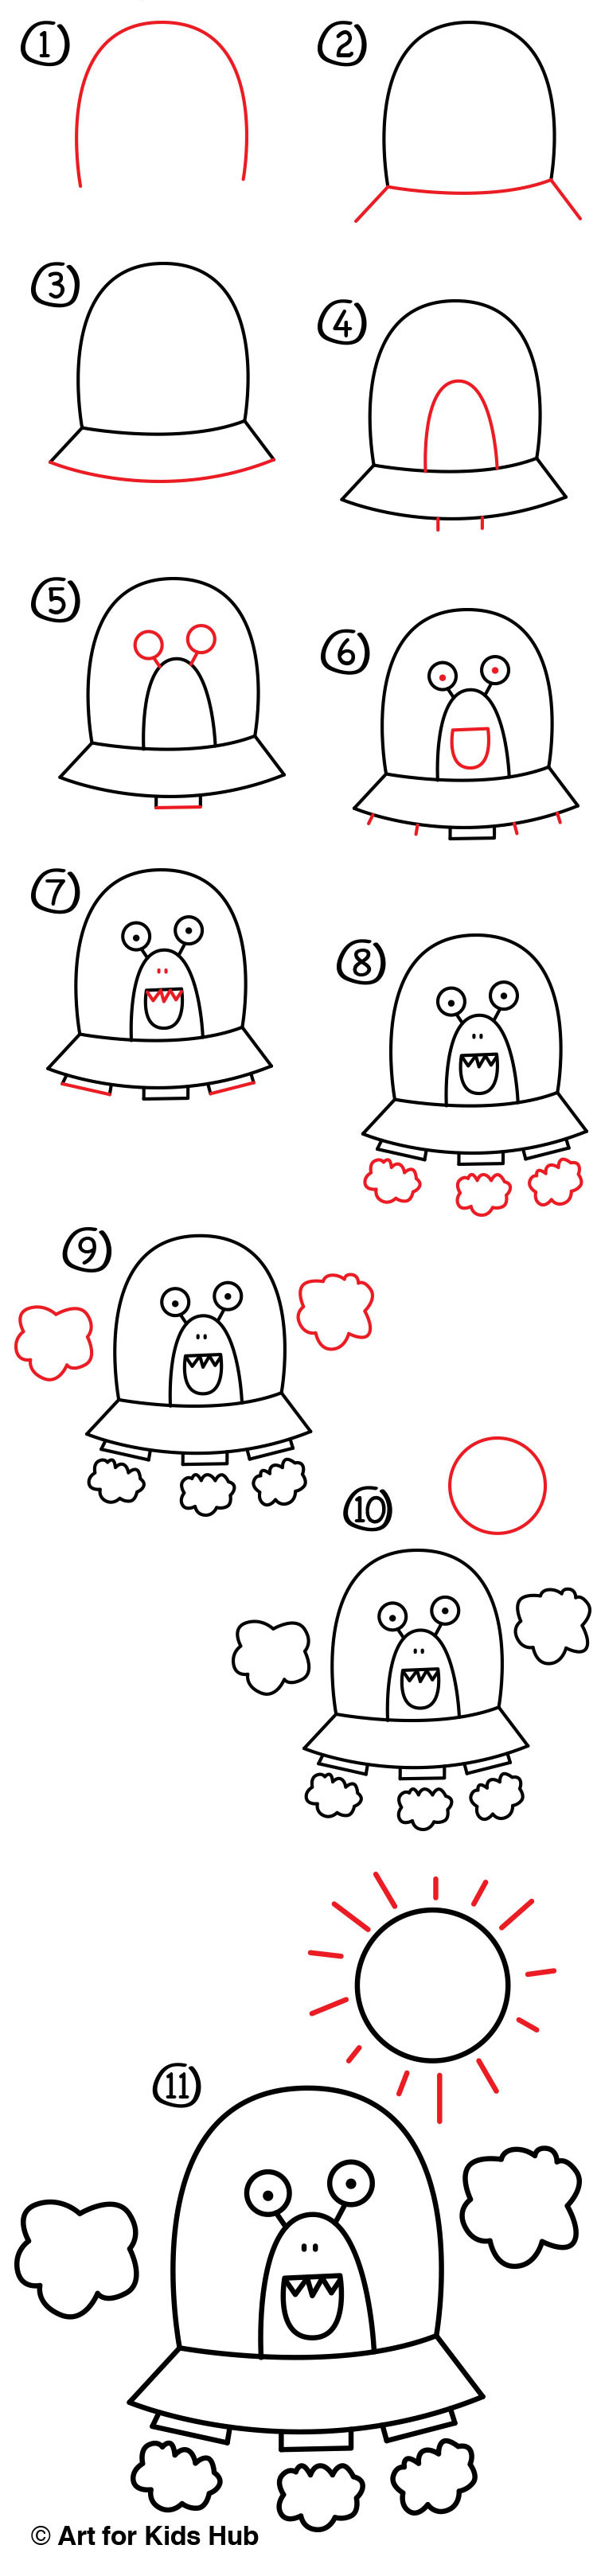 How To Draw An Alien UFO young artists Art For Kids Hub